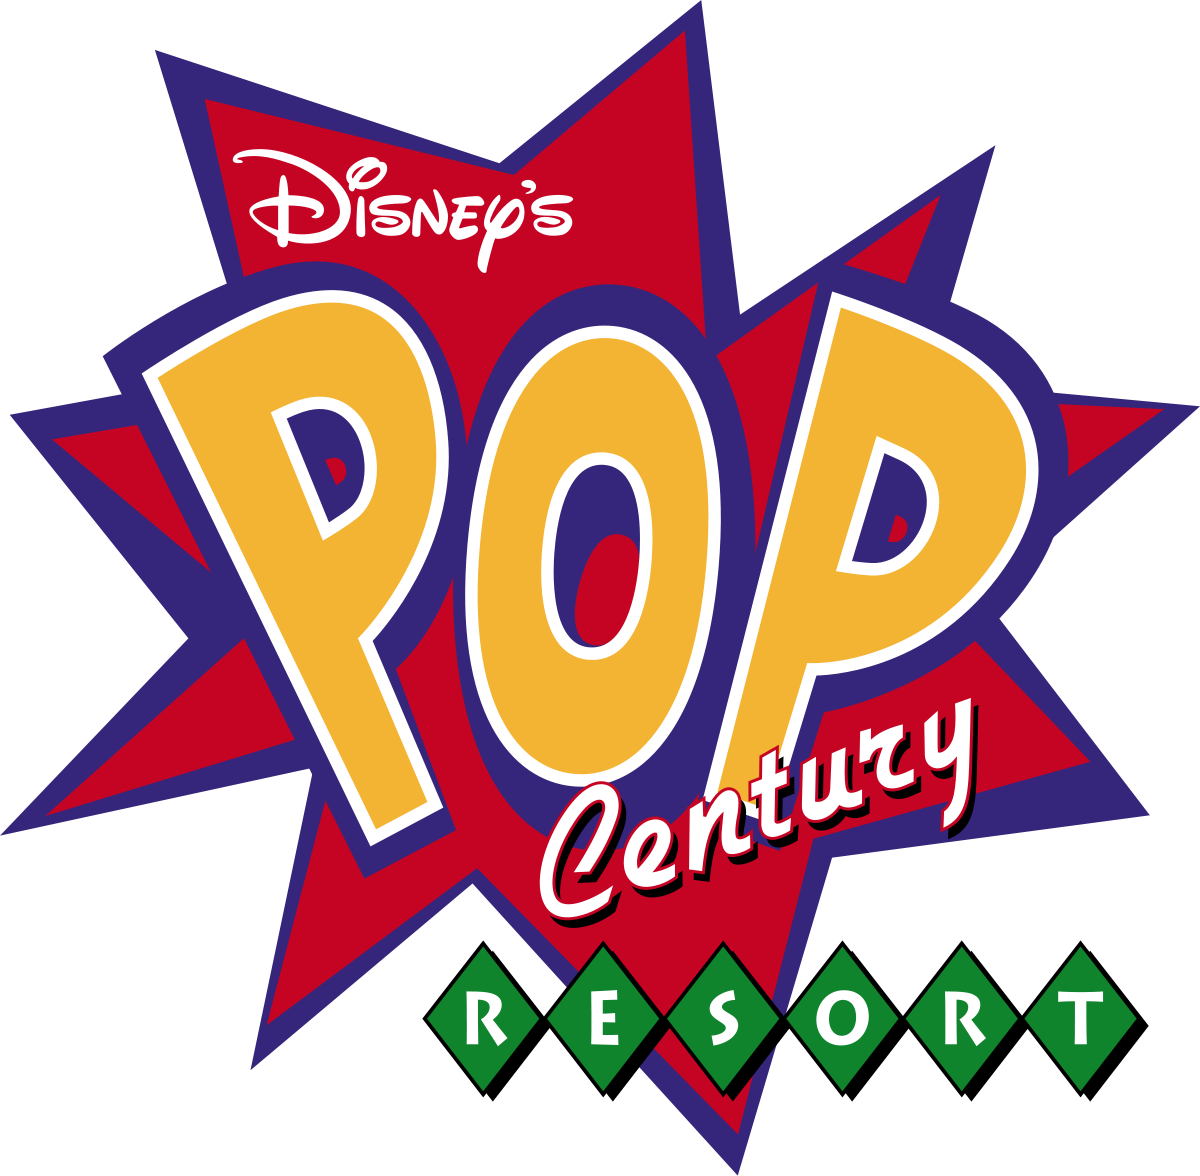 S pop century resort. Disney star clipart